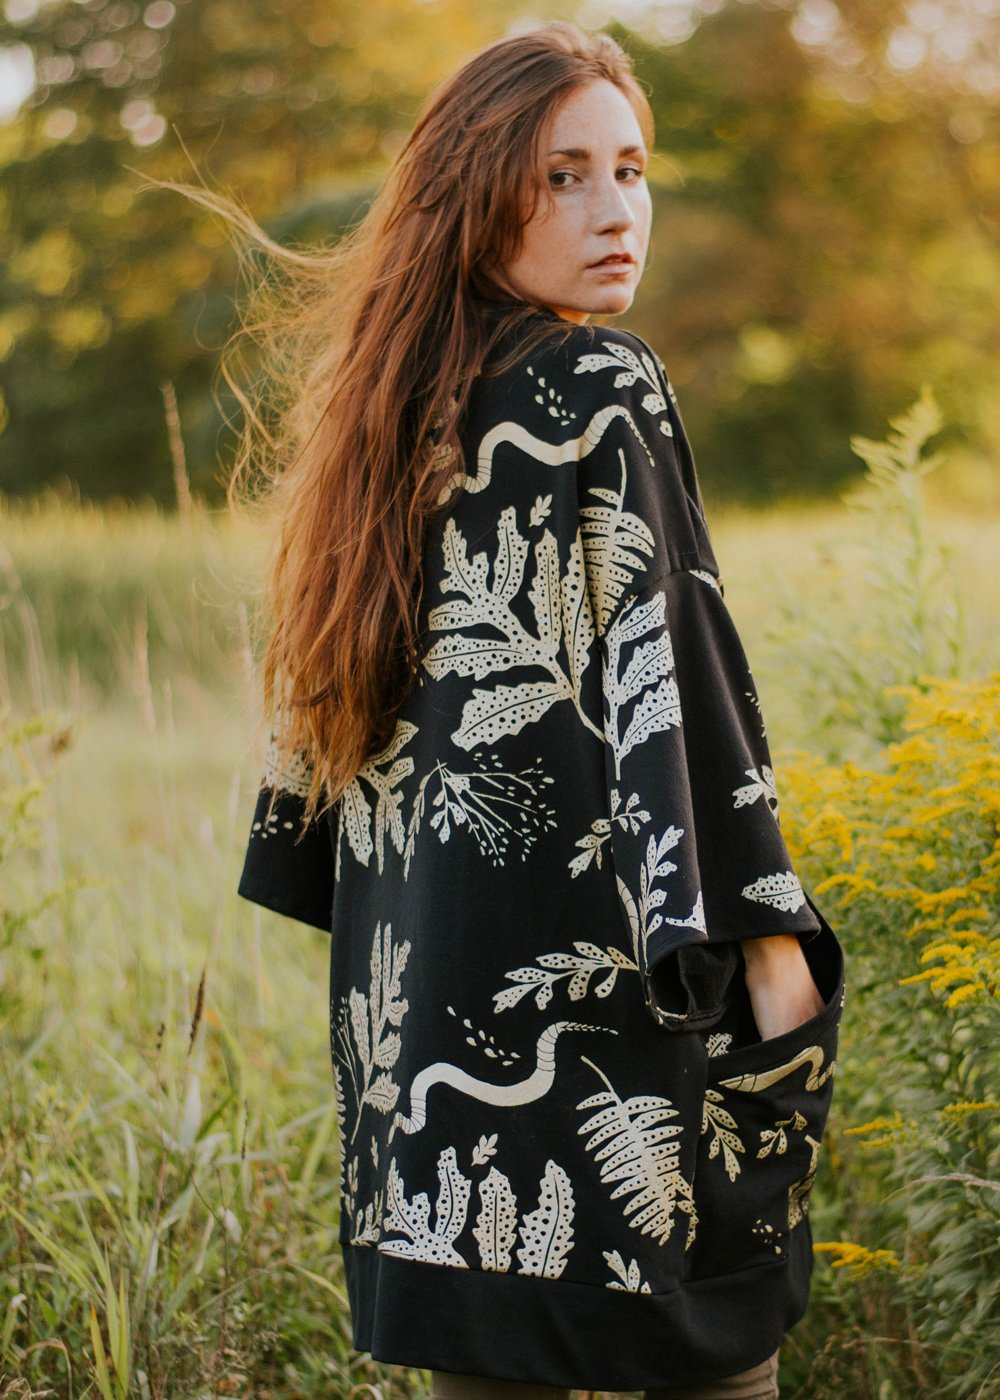 The Tapestry Tunic - Oversized Robe Cardigan in Metallic Gold